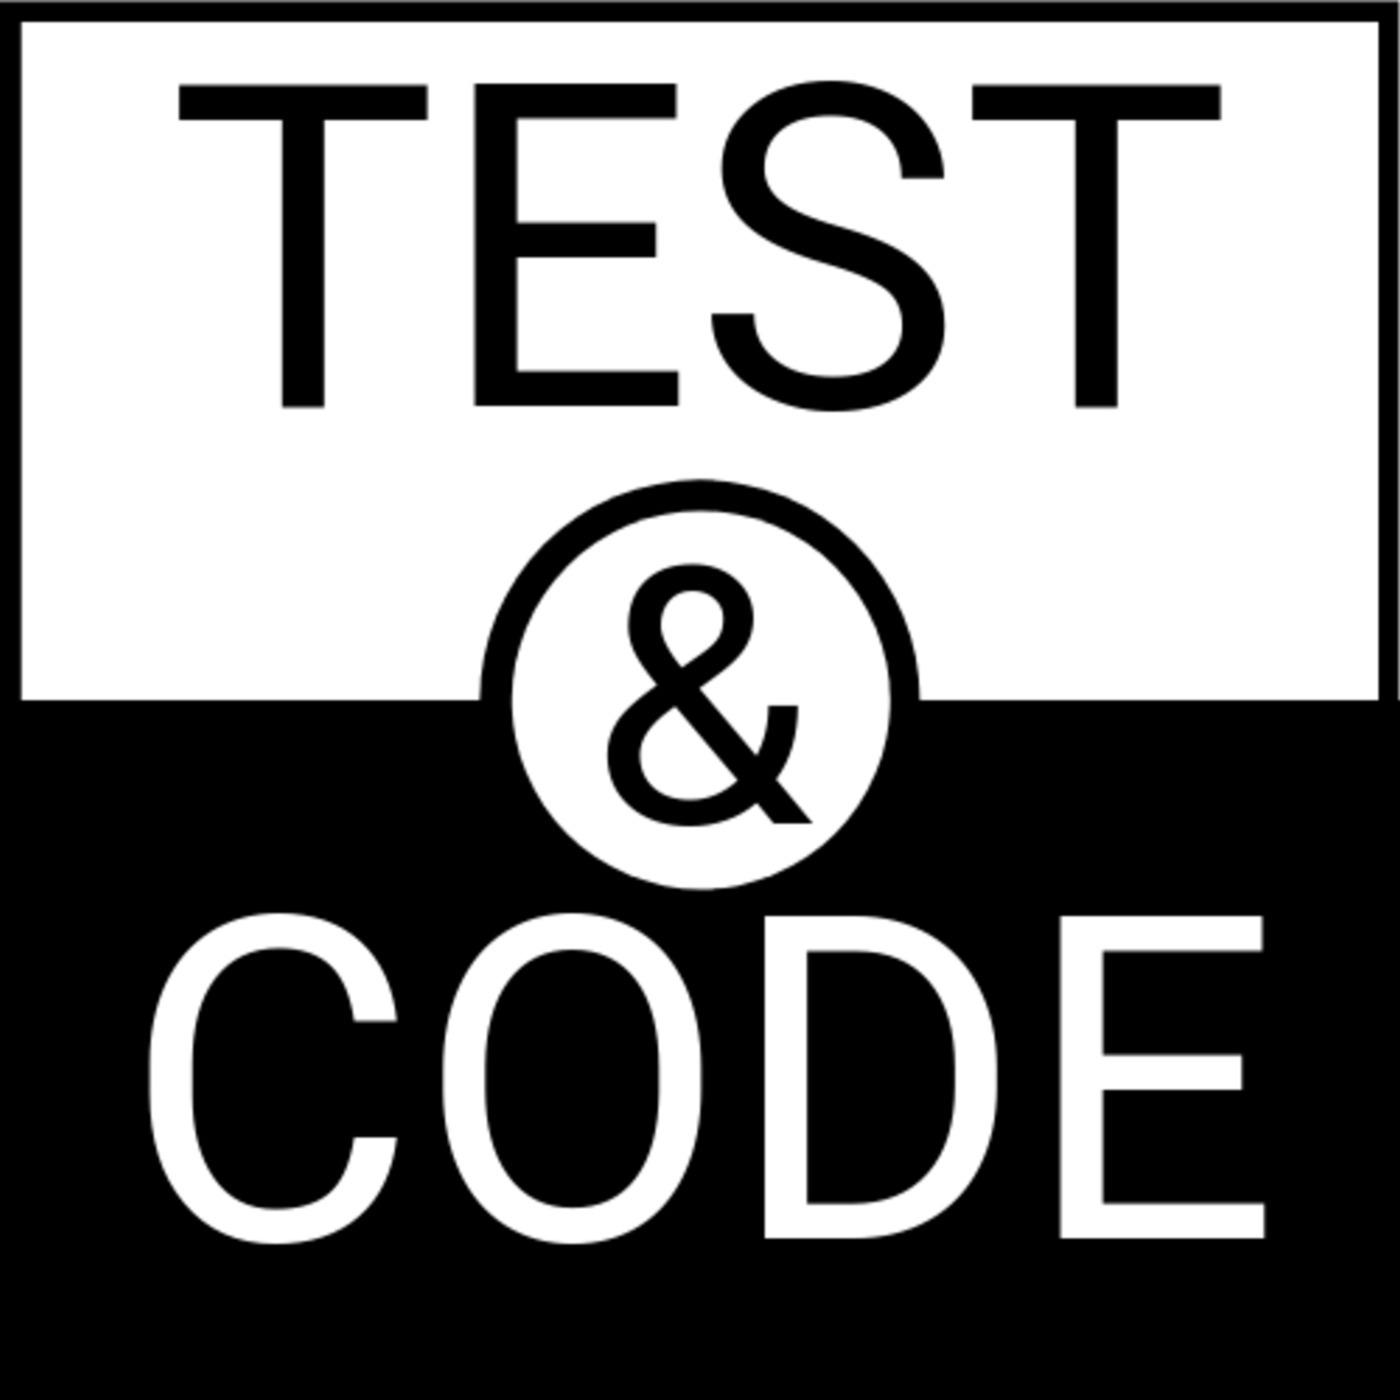 51: Feature Testing